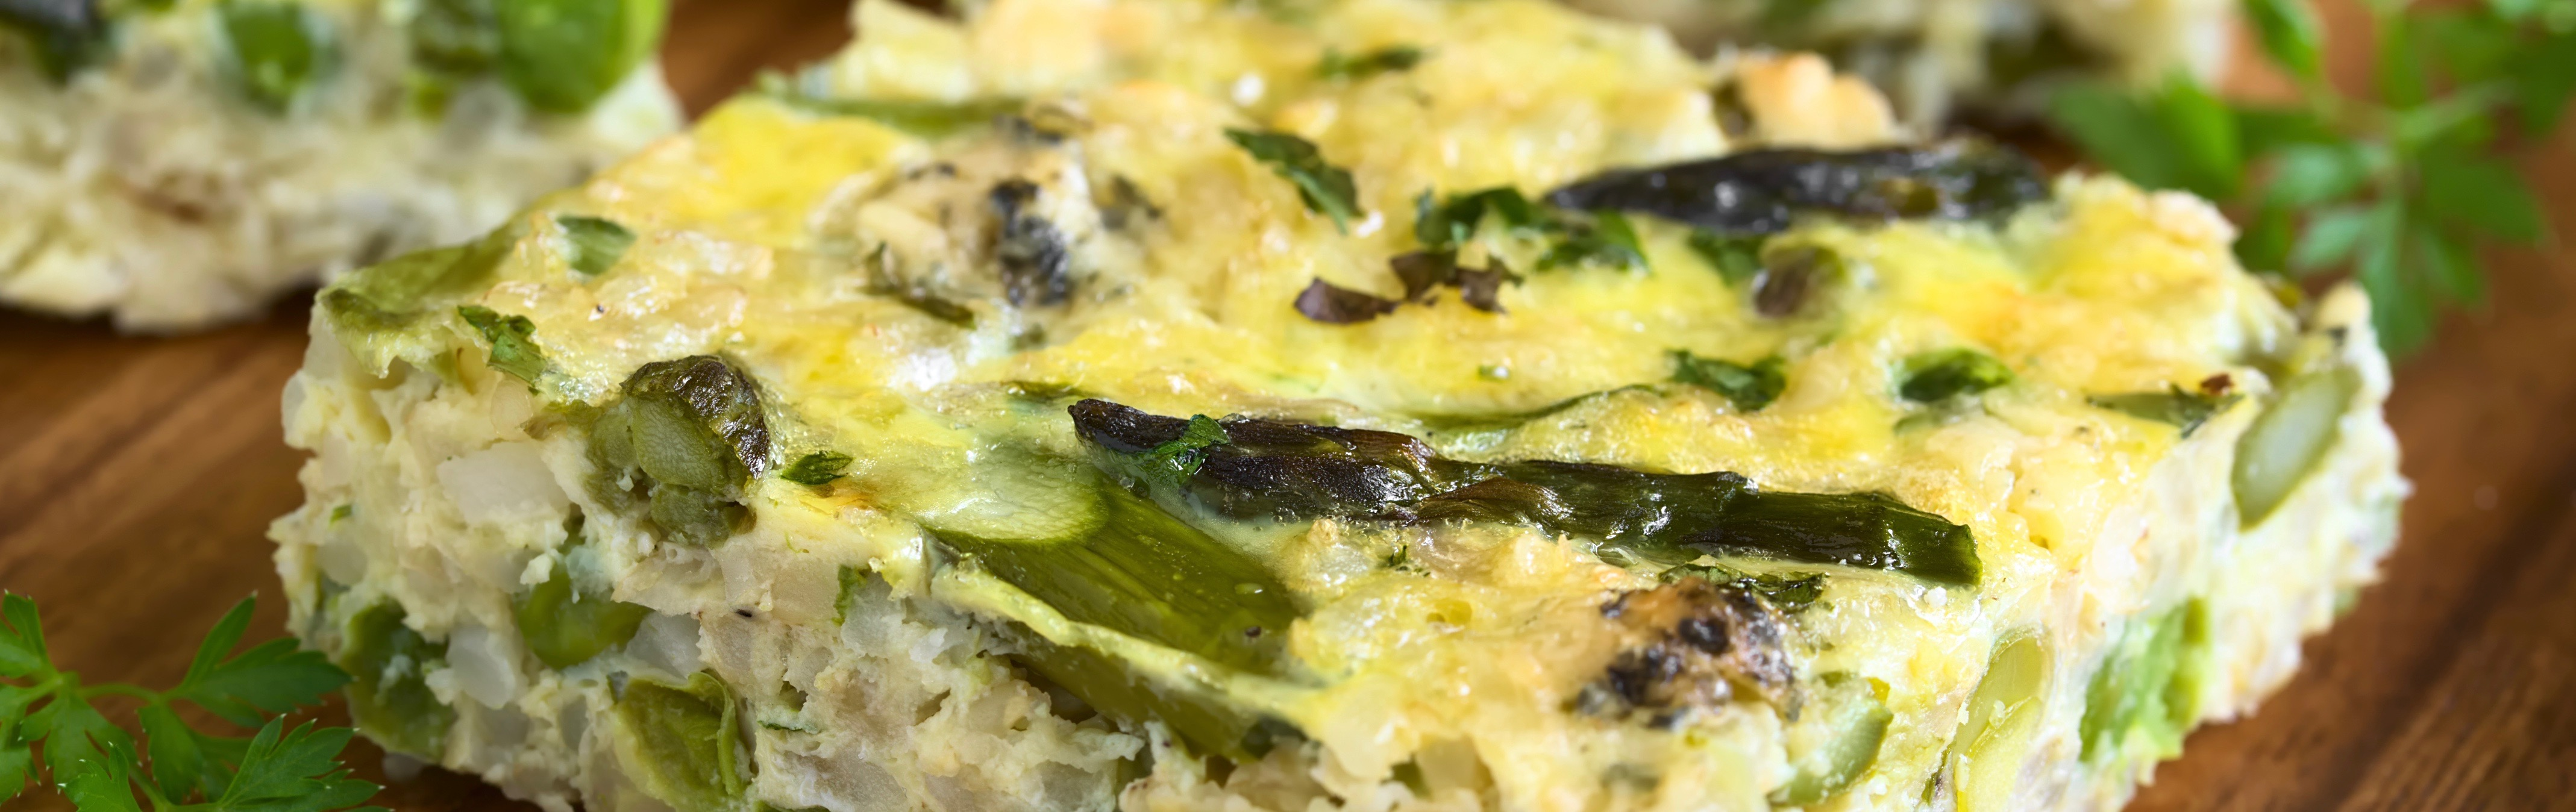 Zucchini Noodles Frittata photo